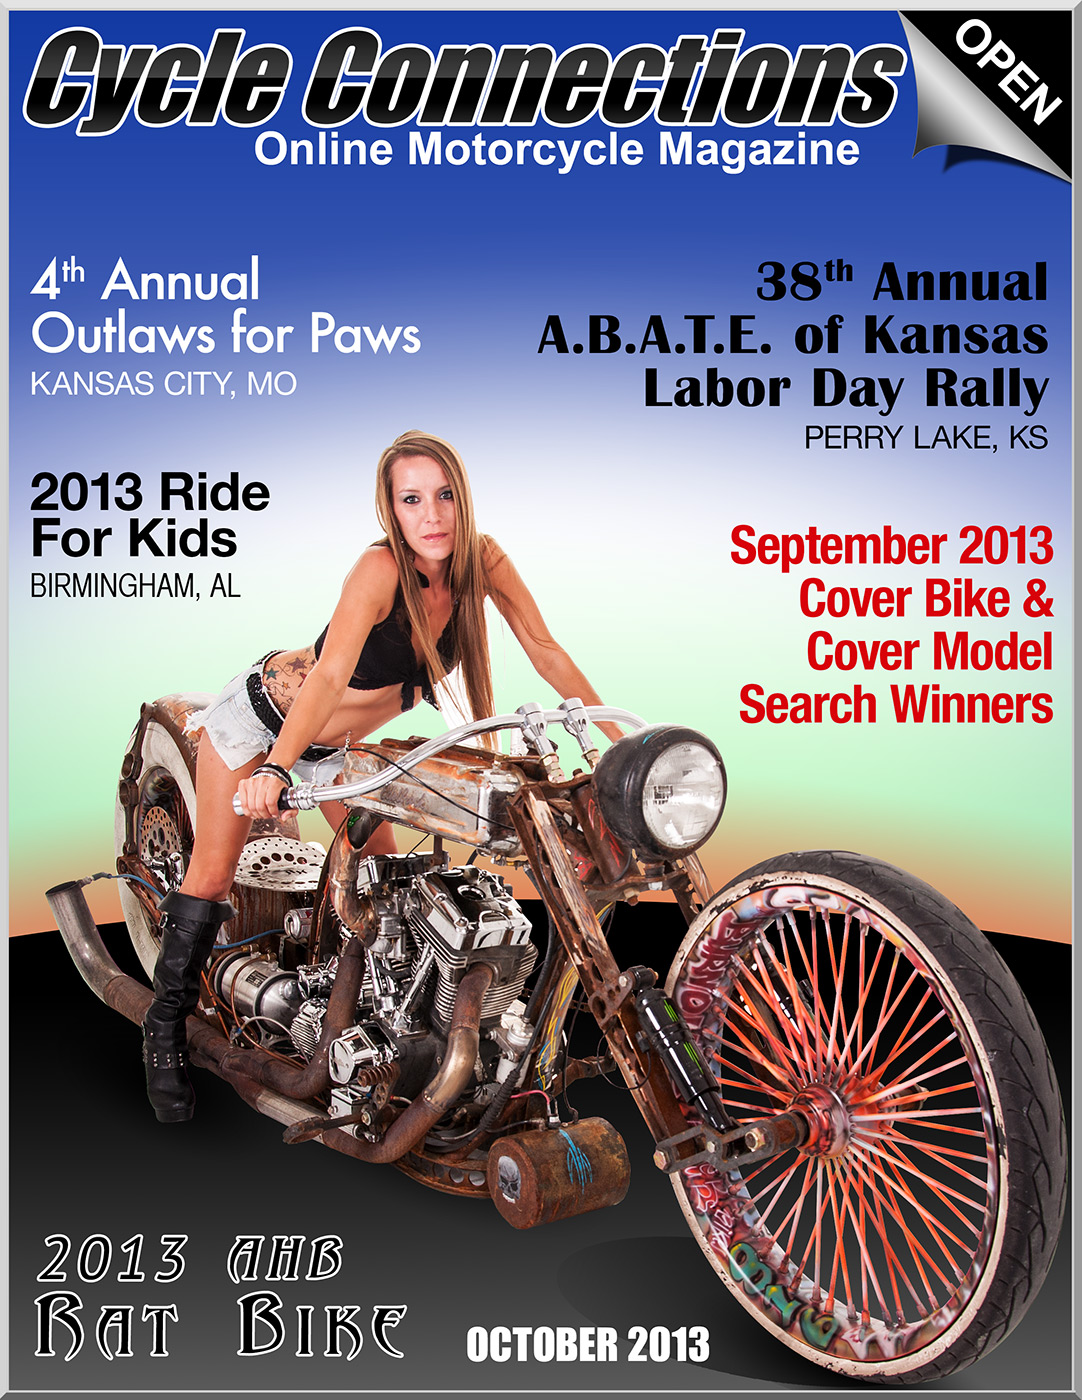 Cycle Connections Online Motorcycle Magazine